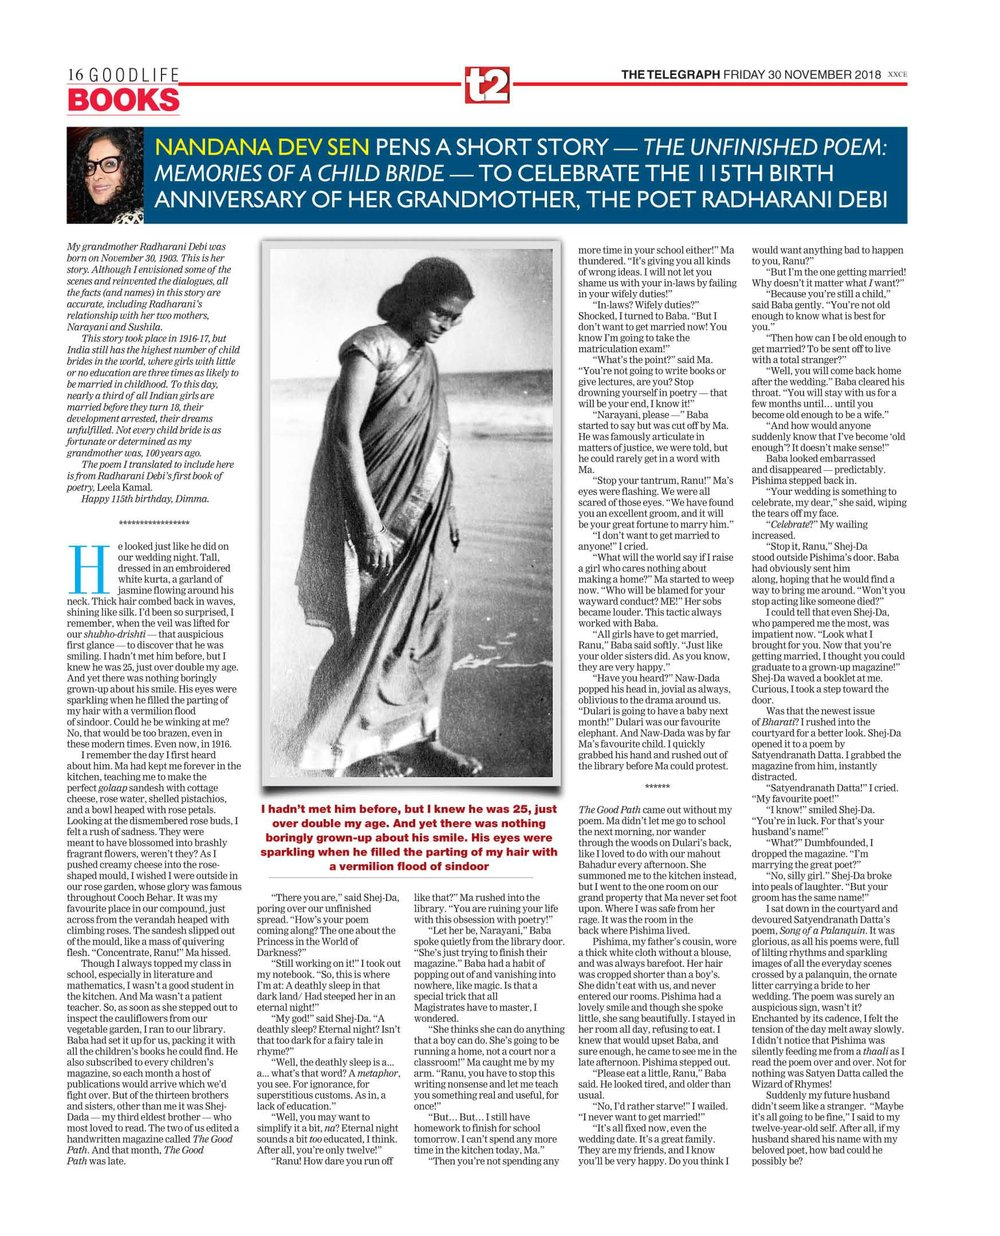 The Unfinished Poem: Memories of a Child Bride  - click here for Part I  Telegraph India November 30, 2018